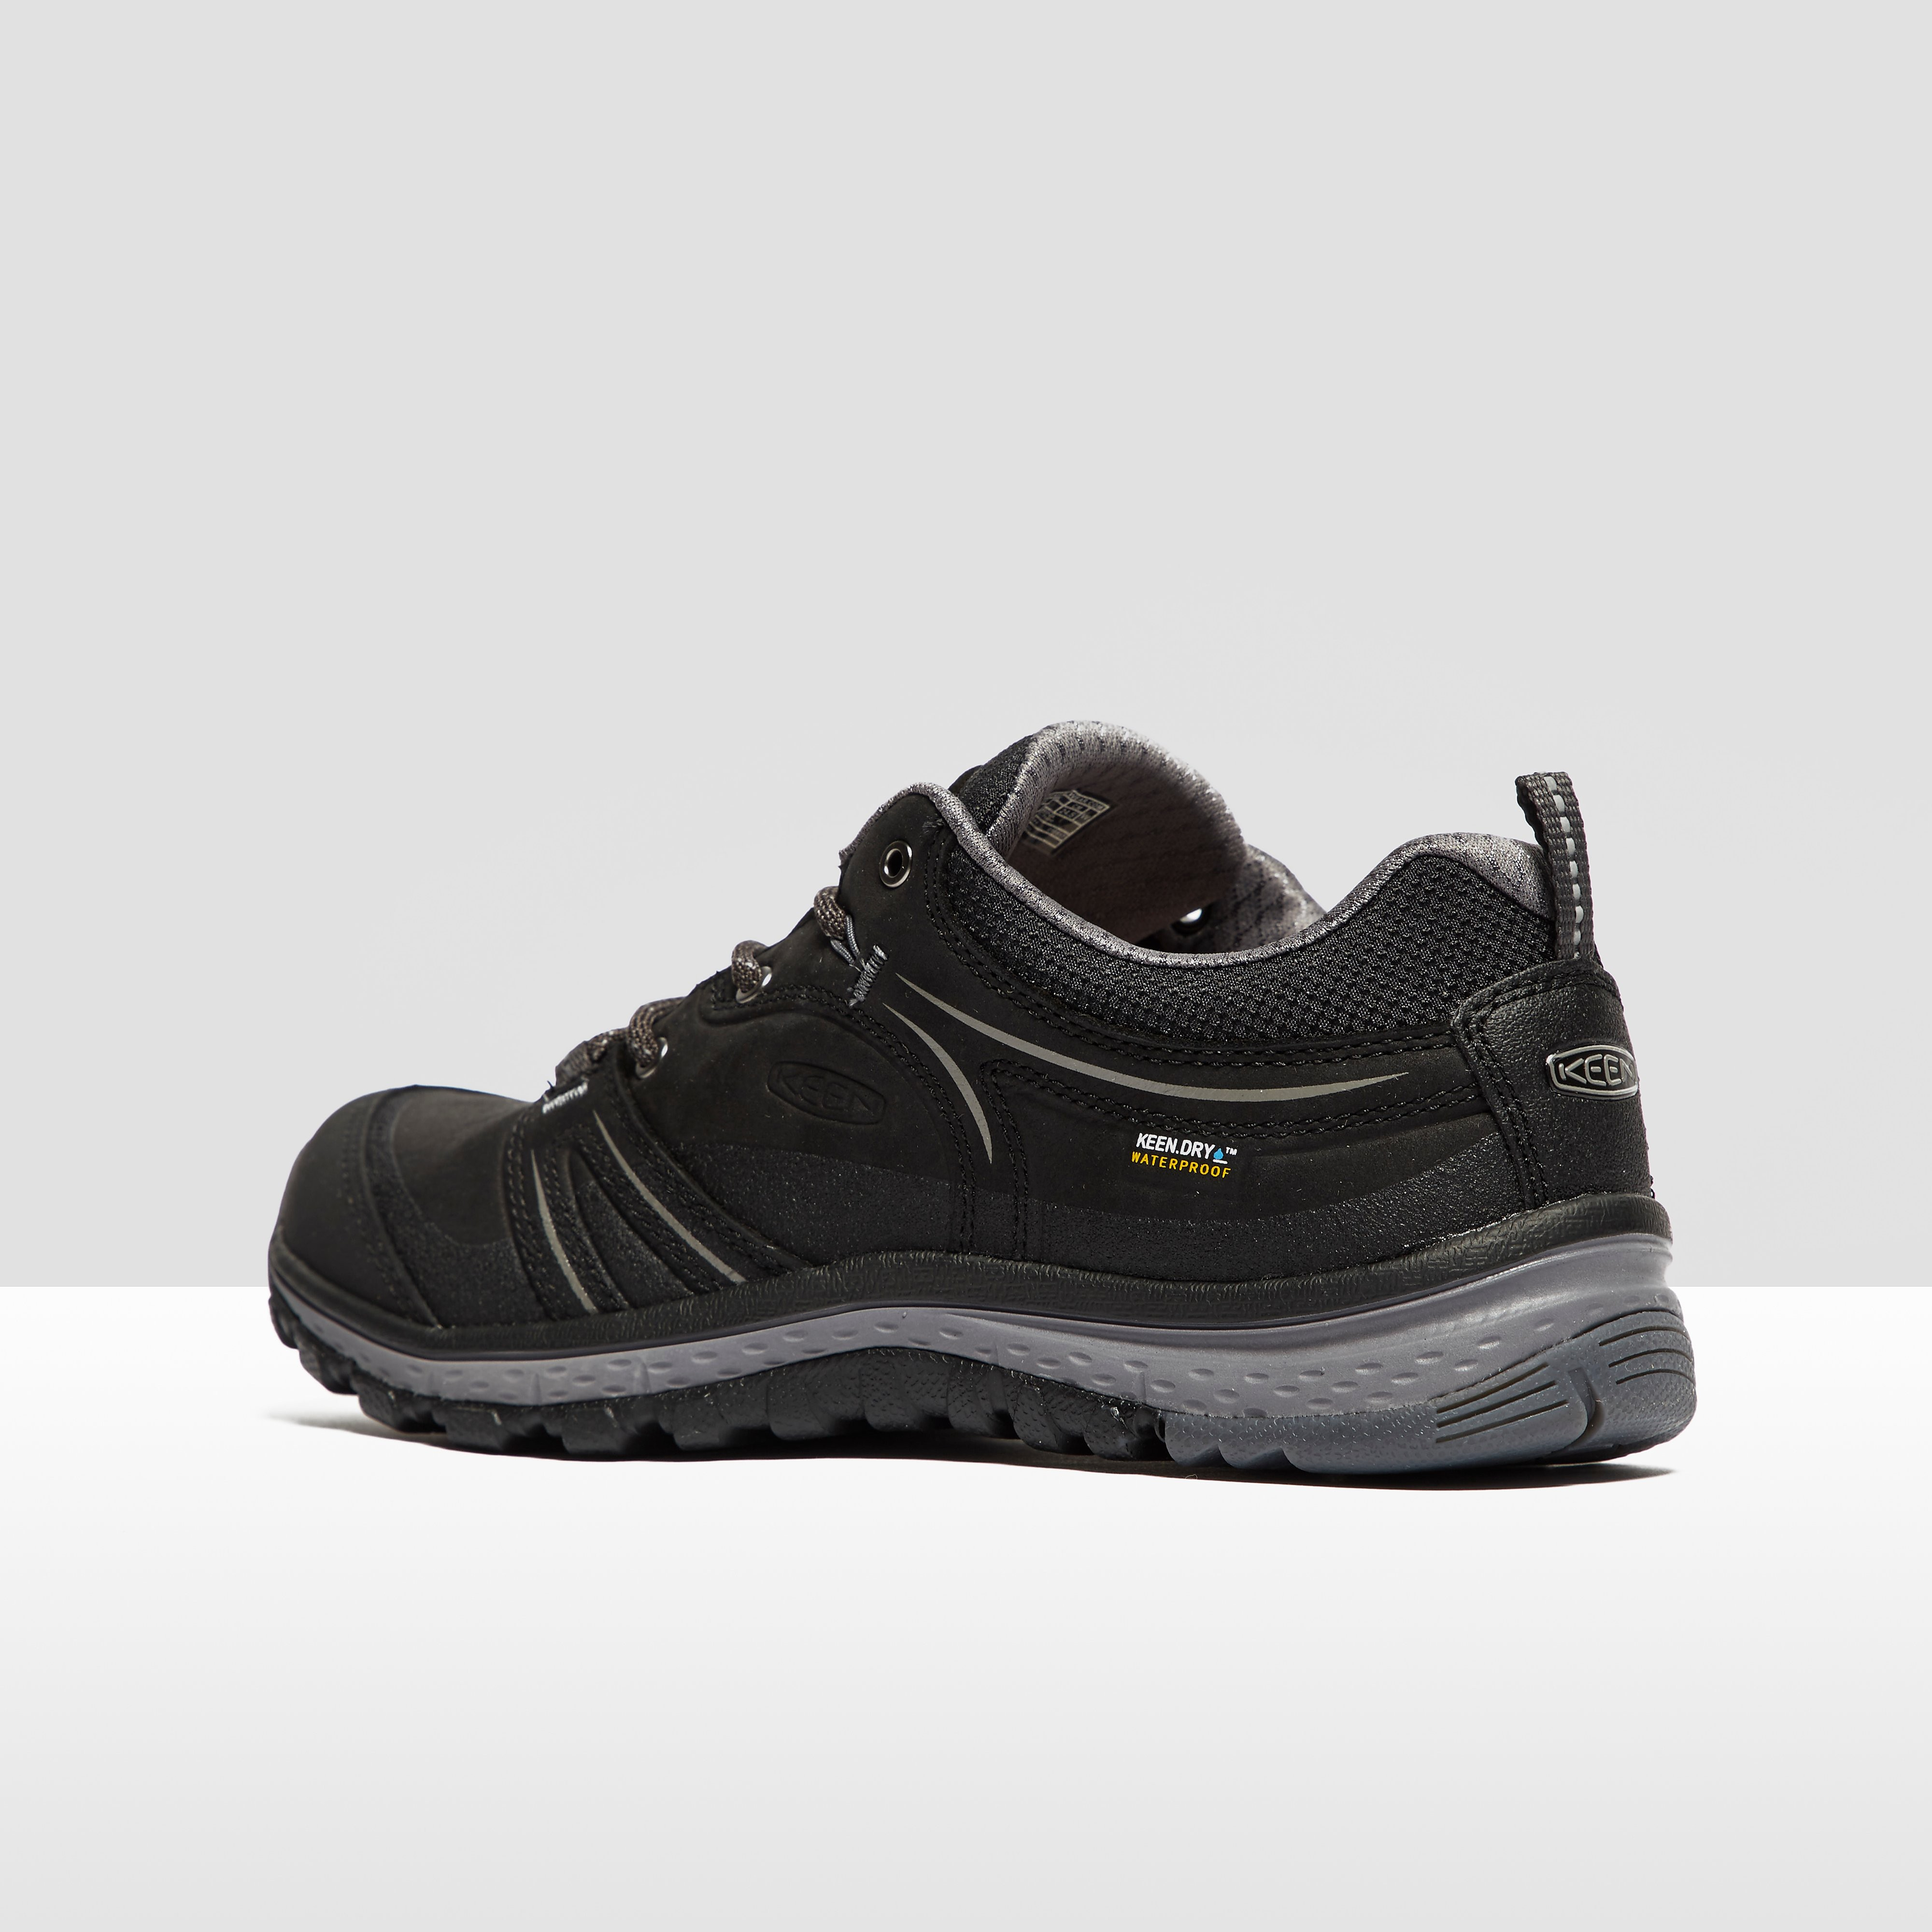 Keen Women's Walking Shoe